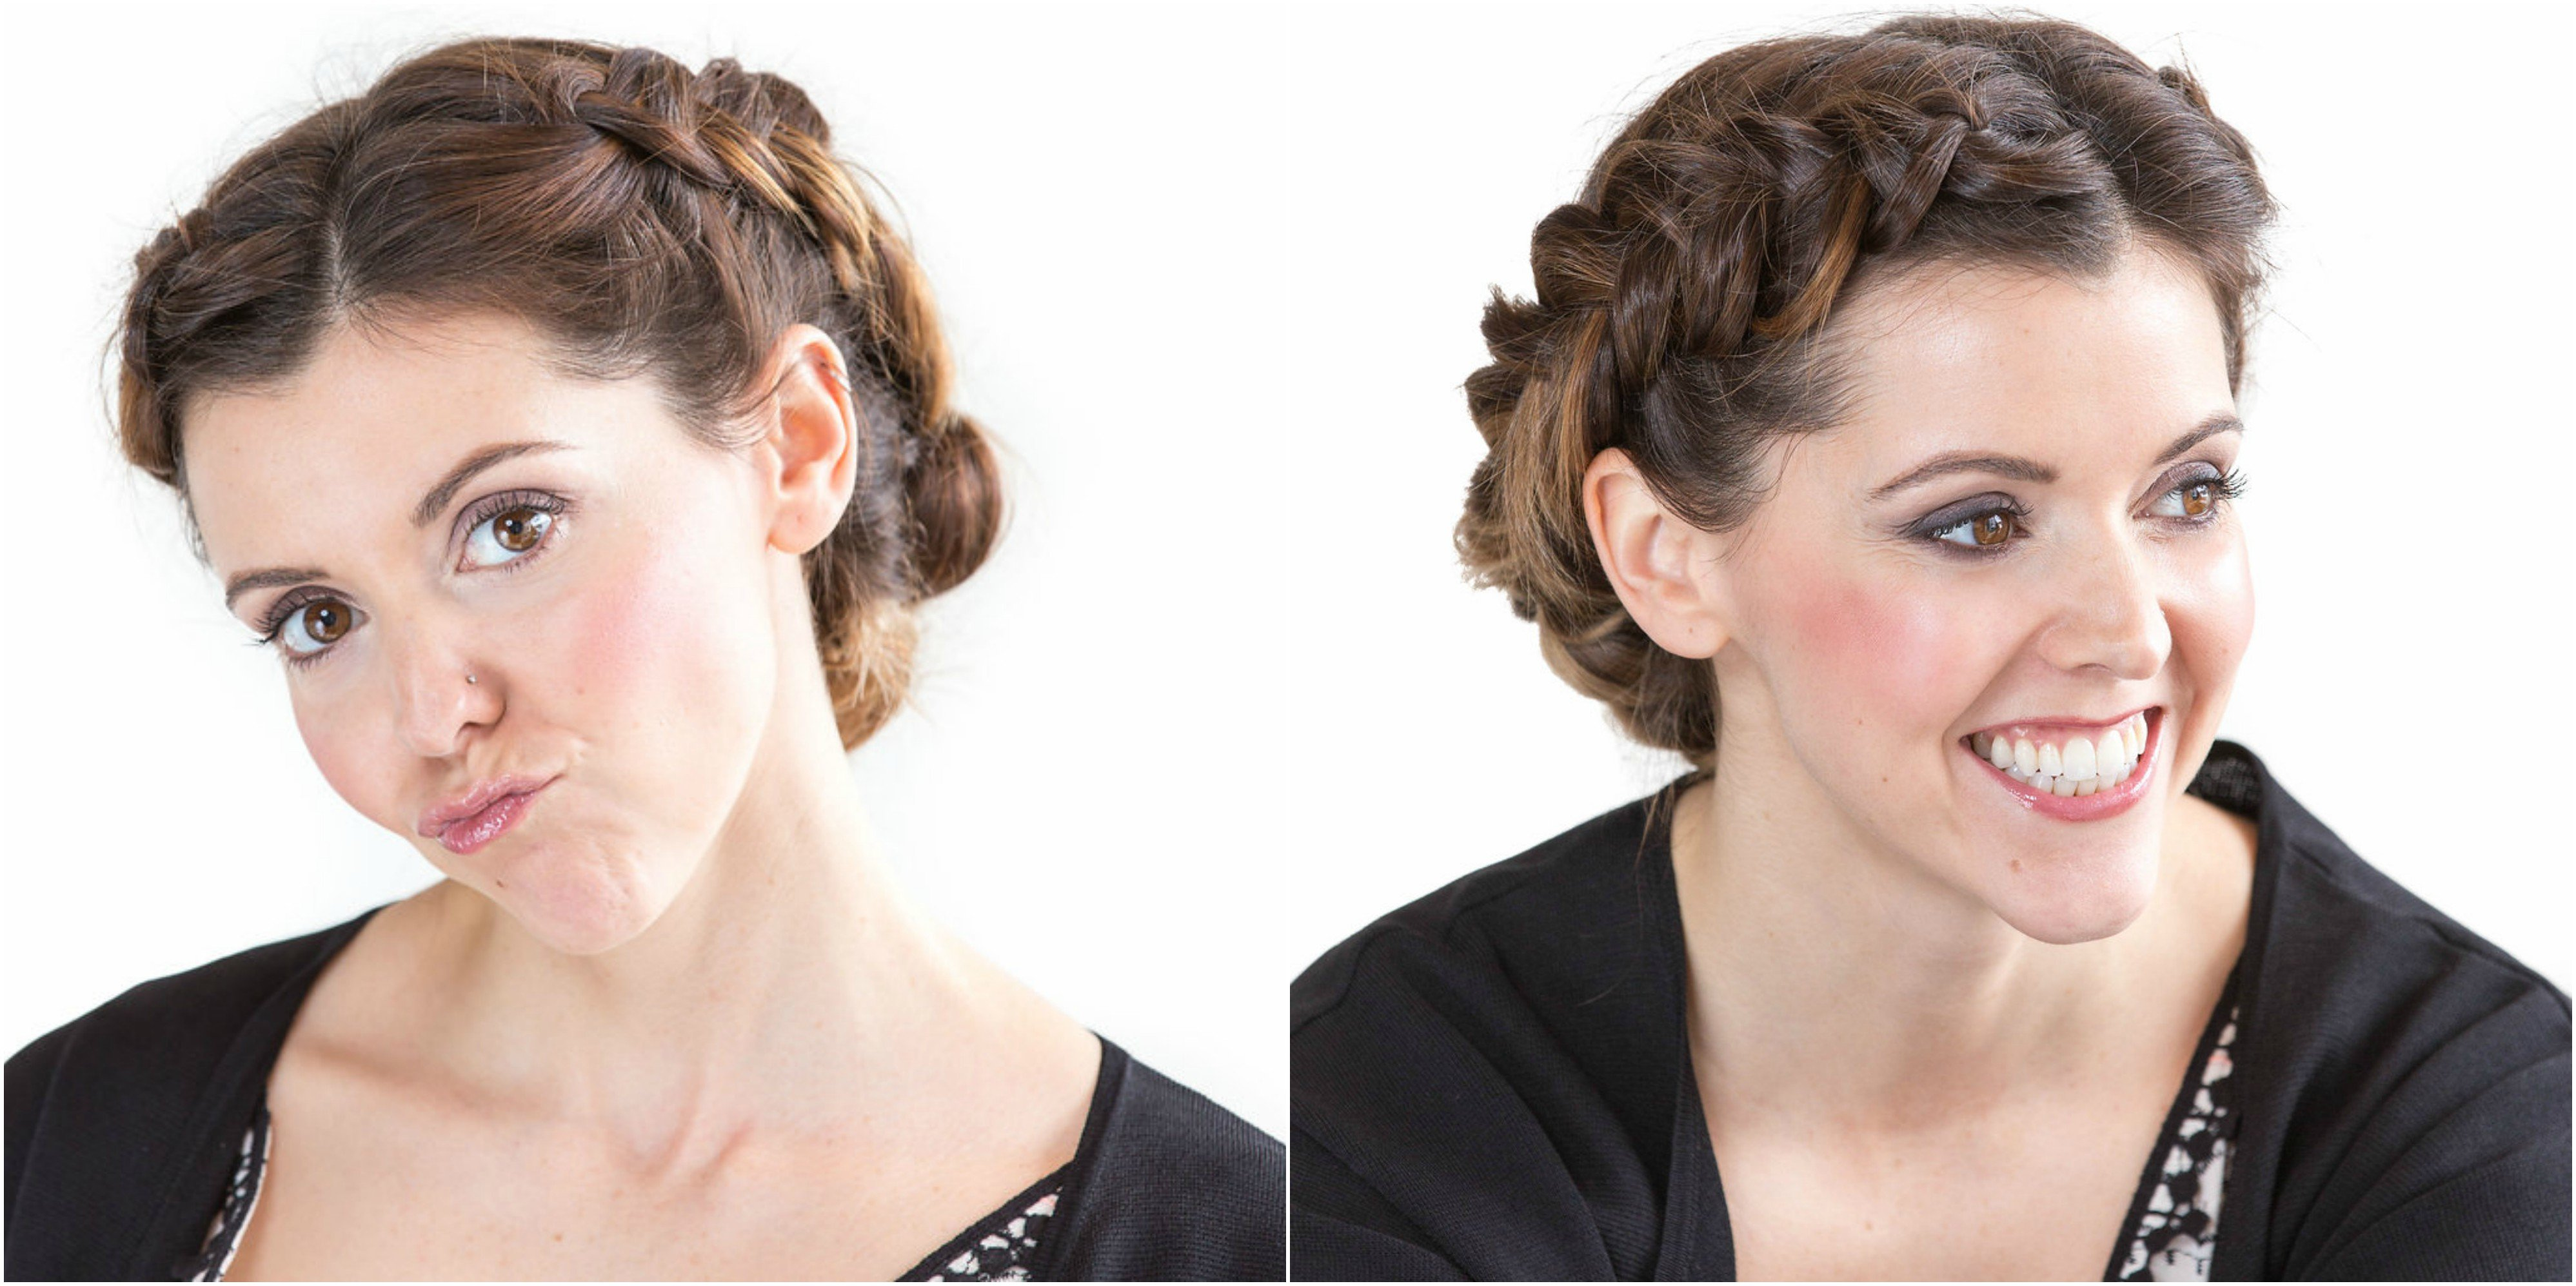 Ottawa makeup artist Klava Z created an eco casual neutral makeup look using only natural organic products